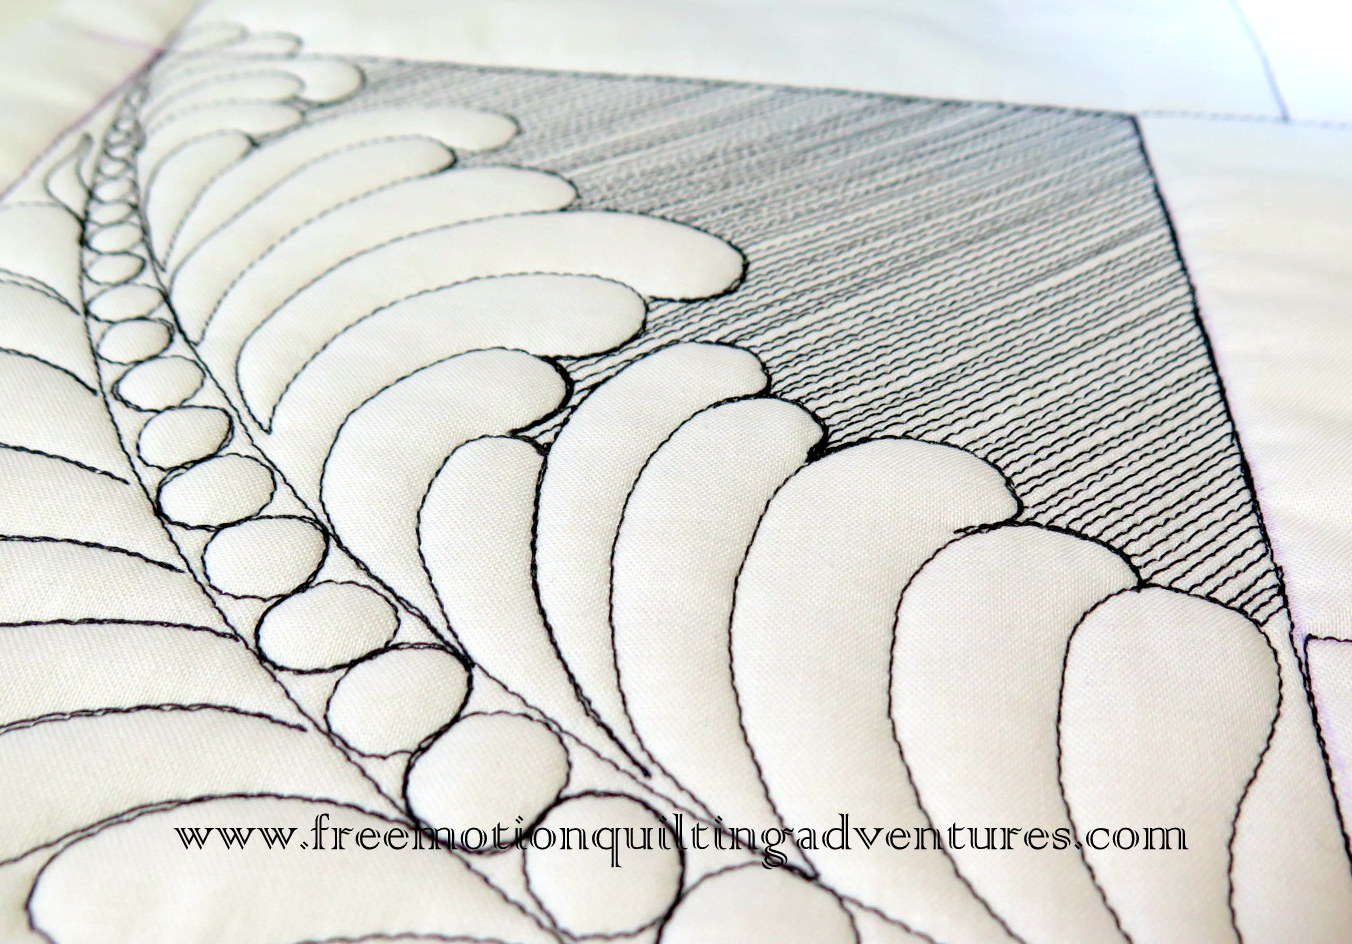 Matchstick fill around free motion feathers